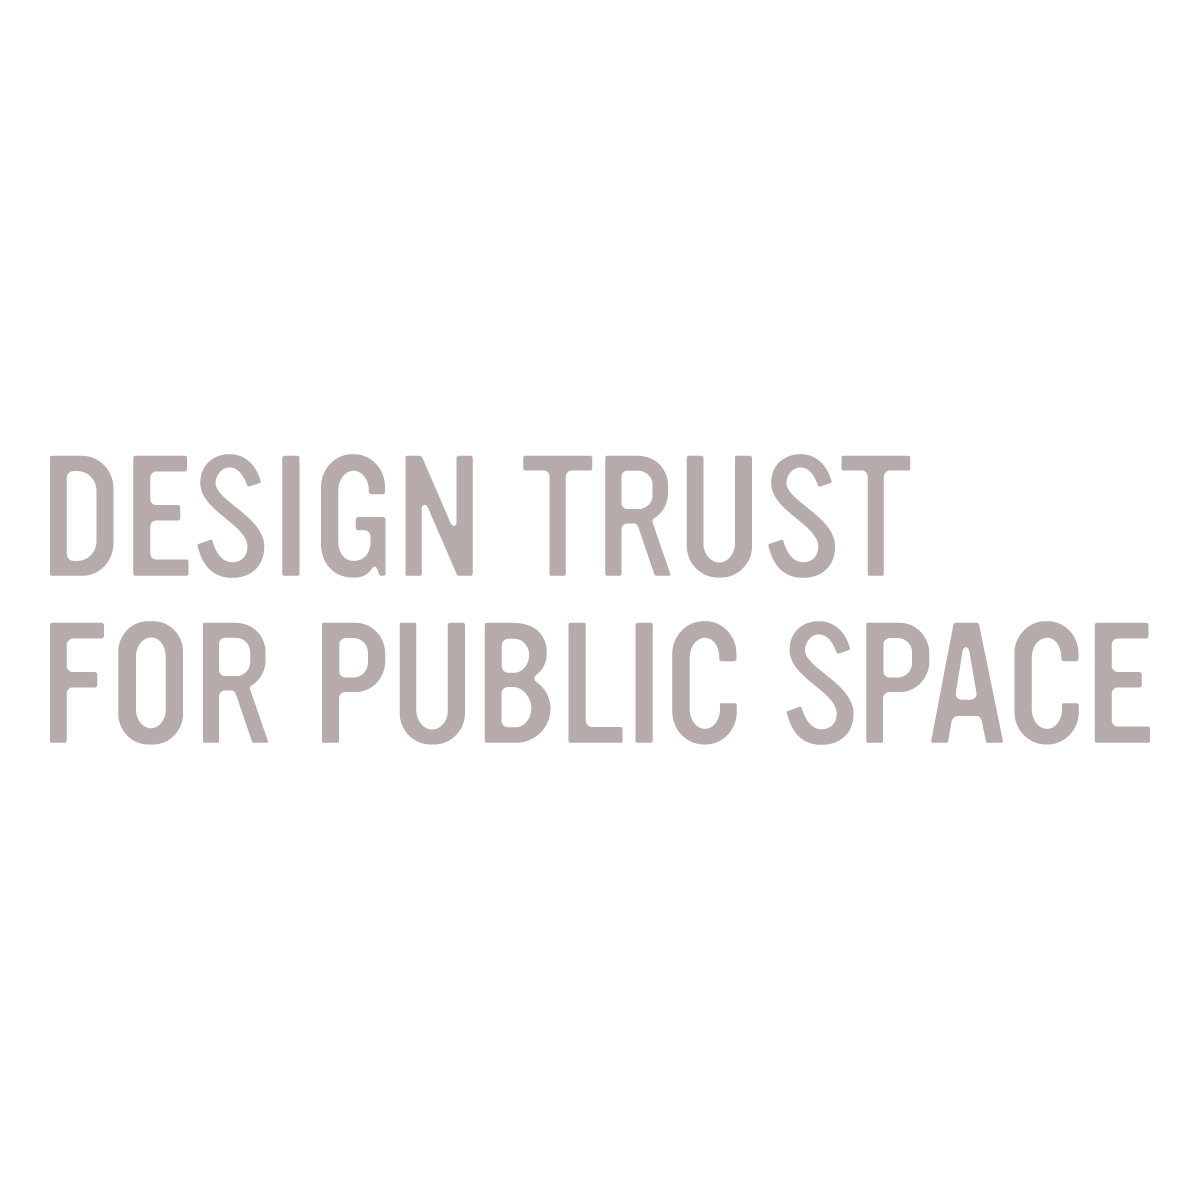 Design Trust Calls for Equitable Public Space Fellows